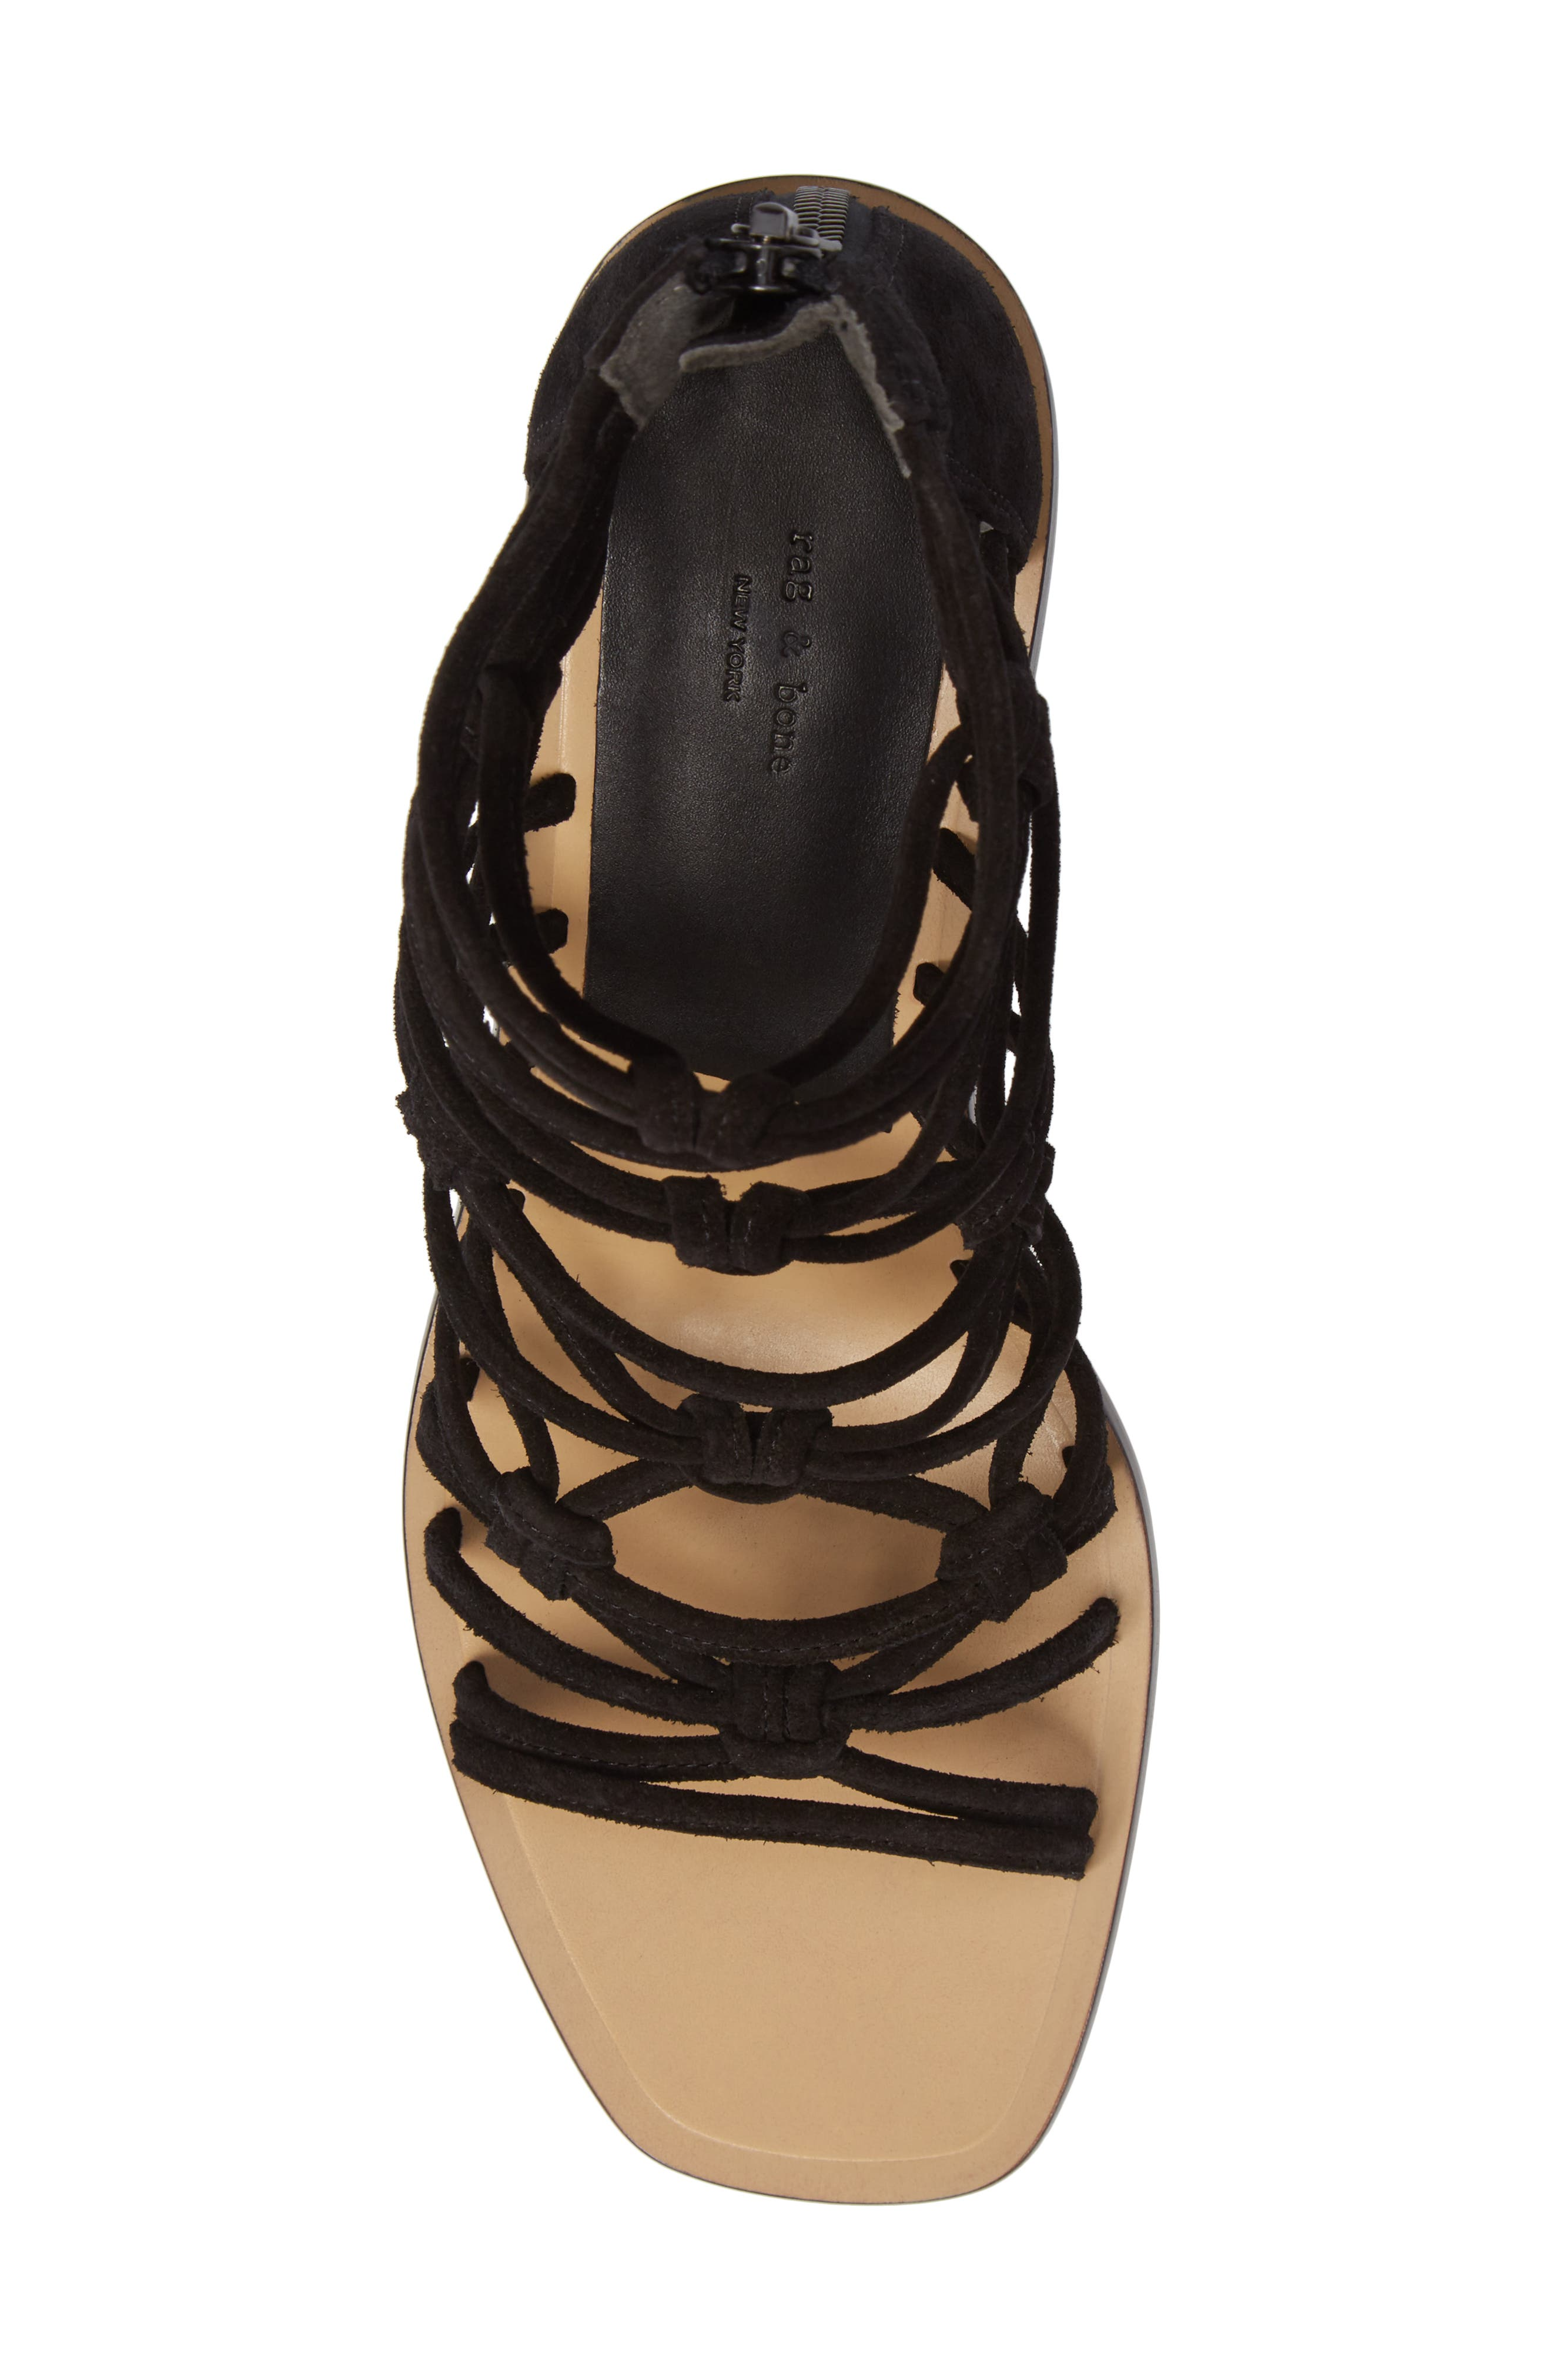 Camille Knotted Strappy Sandal,                             Alternate thumbnail 5, color,                             008